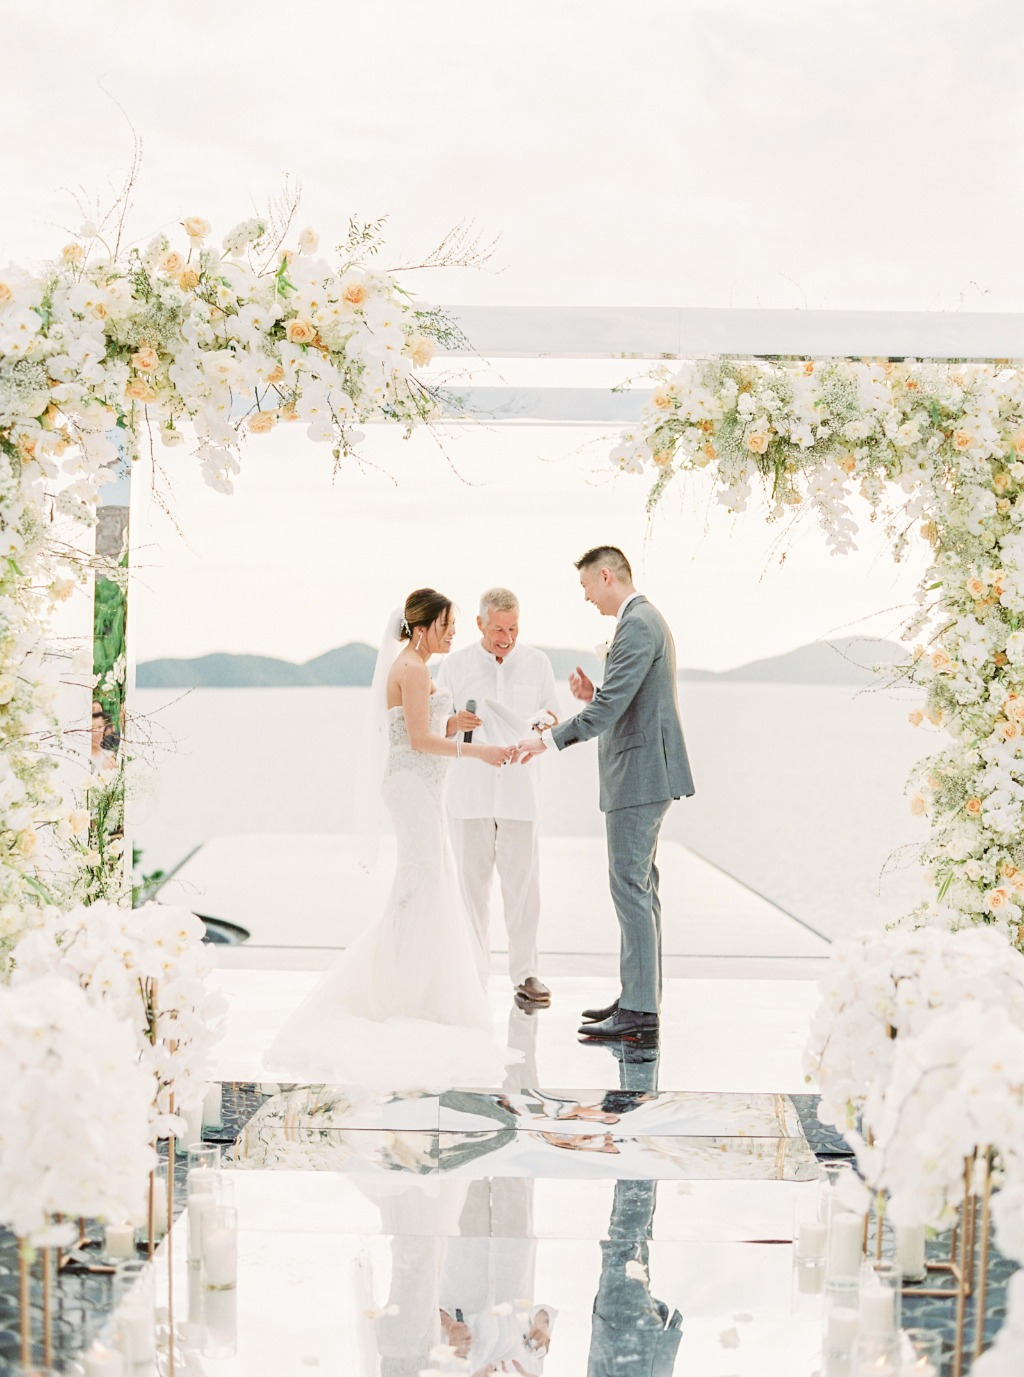 Unforgettable wedding ceremony in Phuket with sweeping views and jaw-dropping design